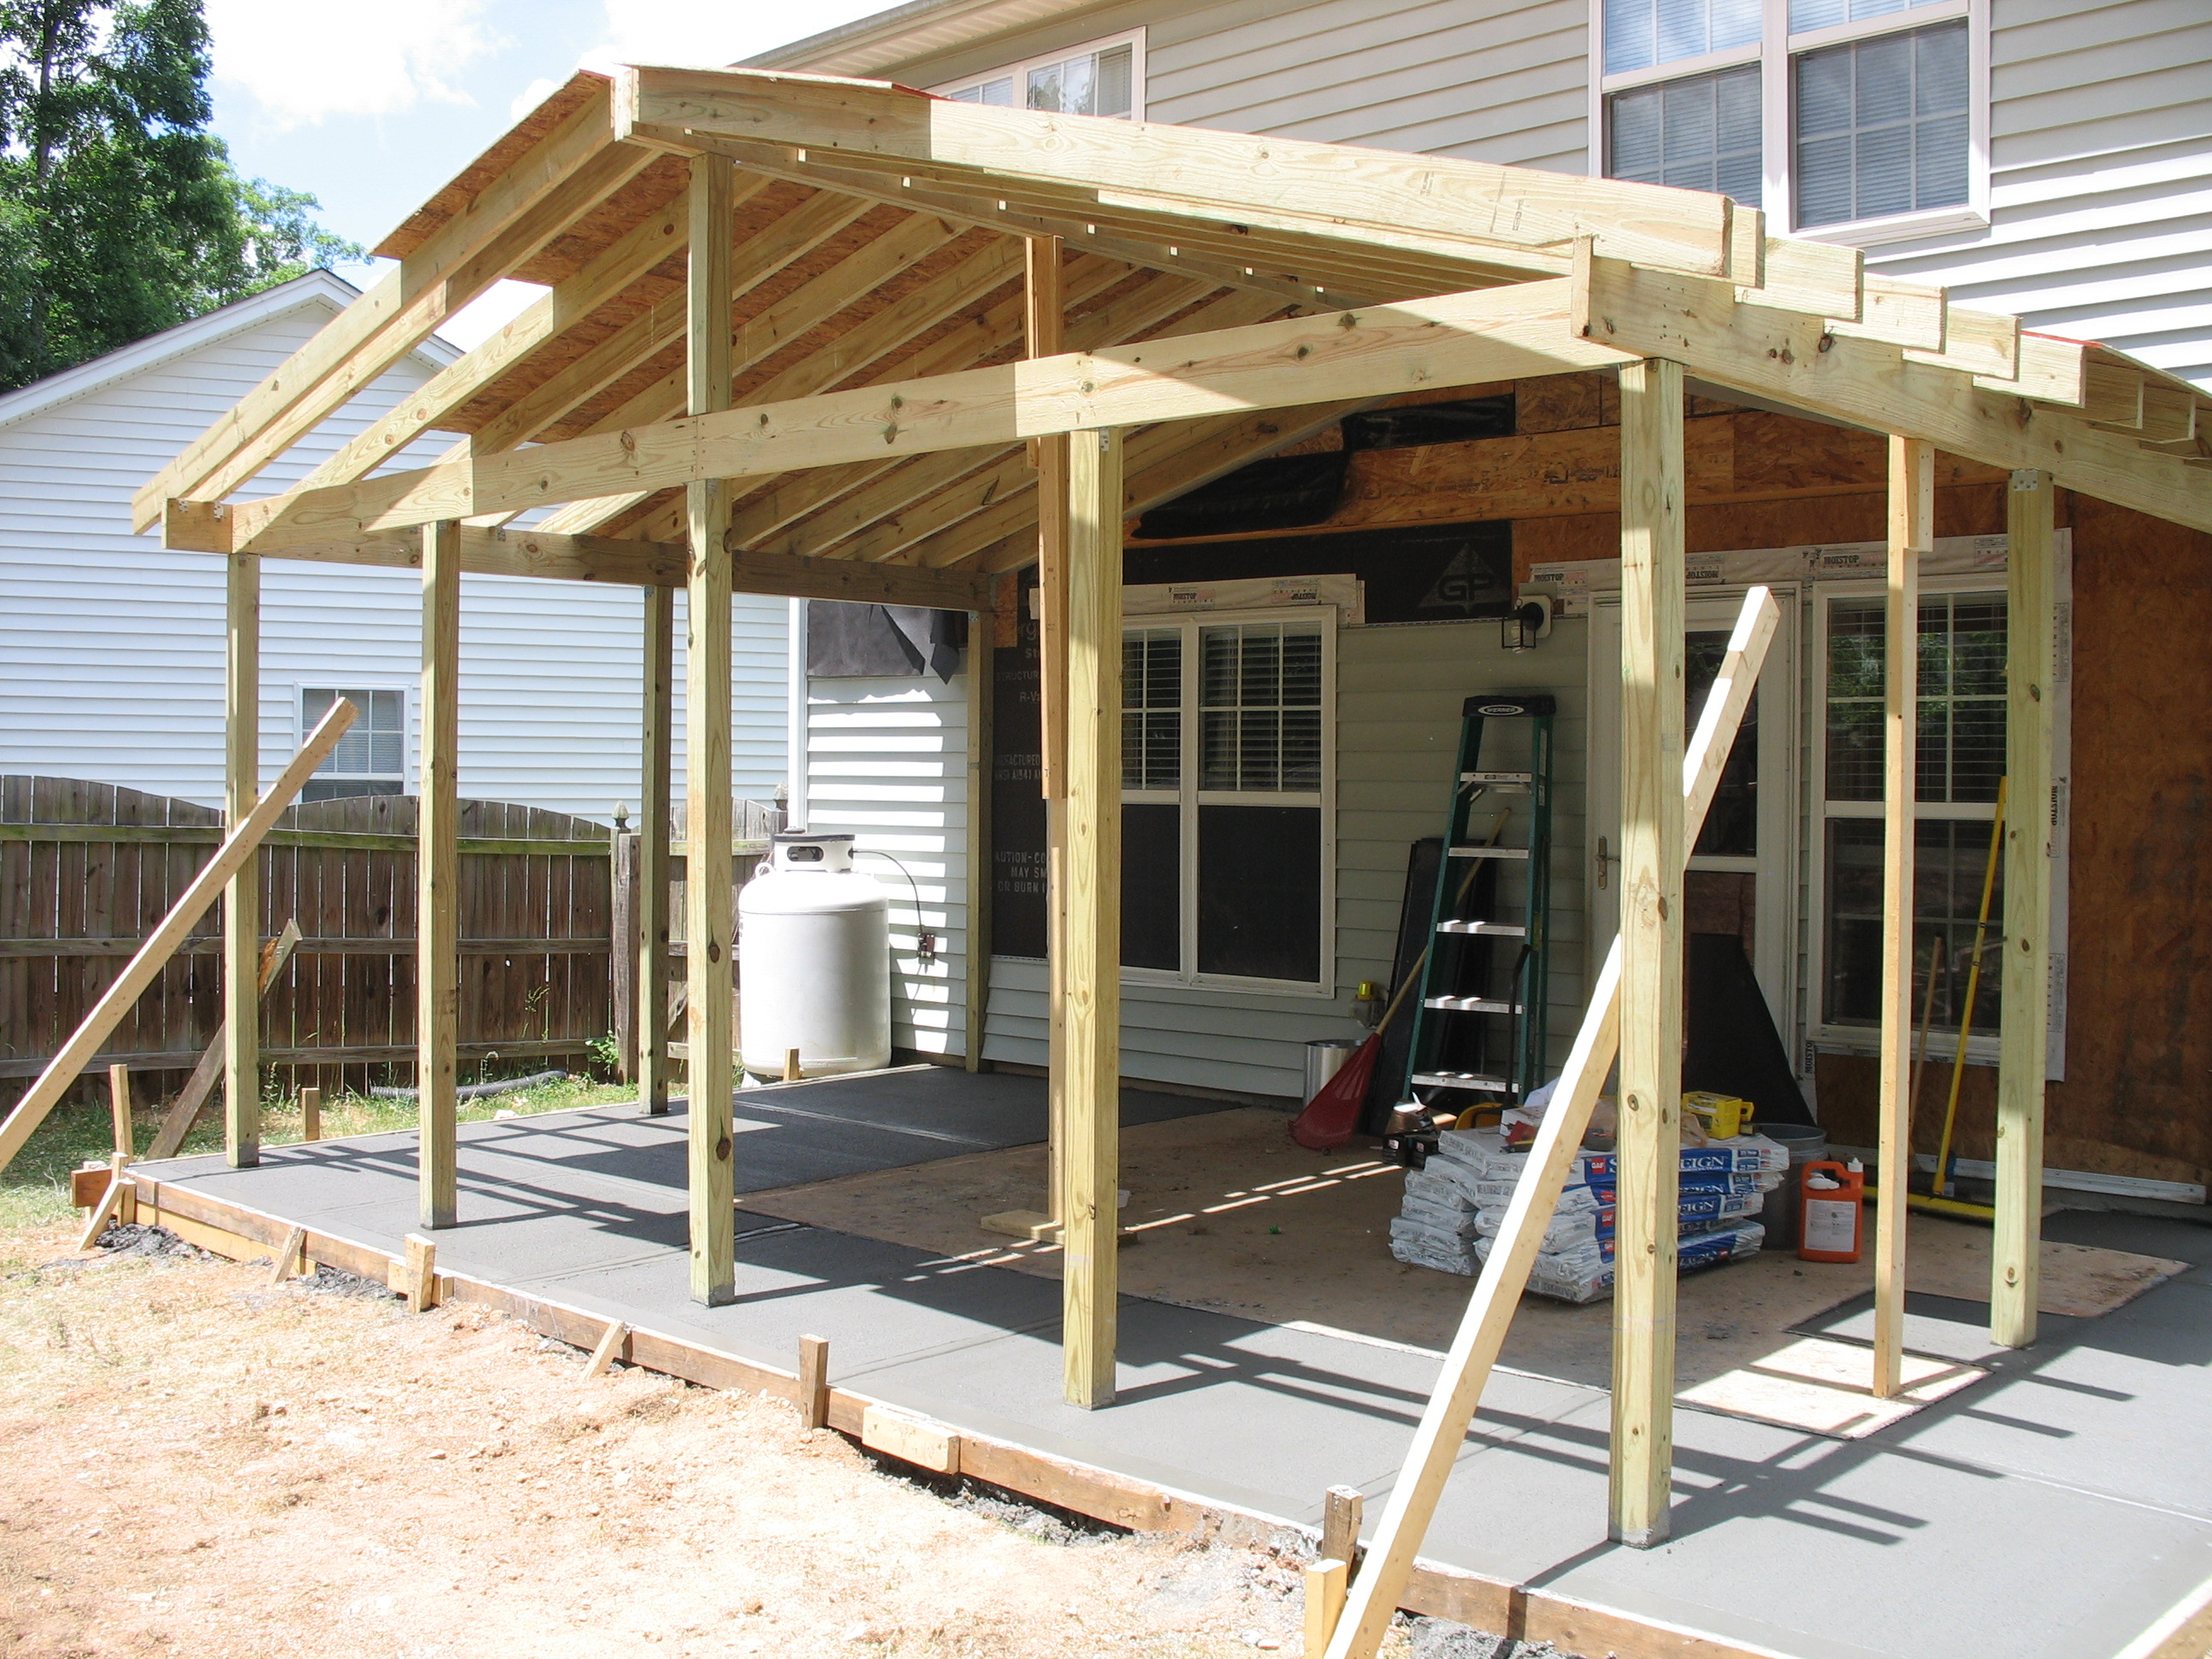 screenporchbyrbm remodeling how solutions a llc screen to rbm in porch